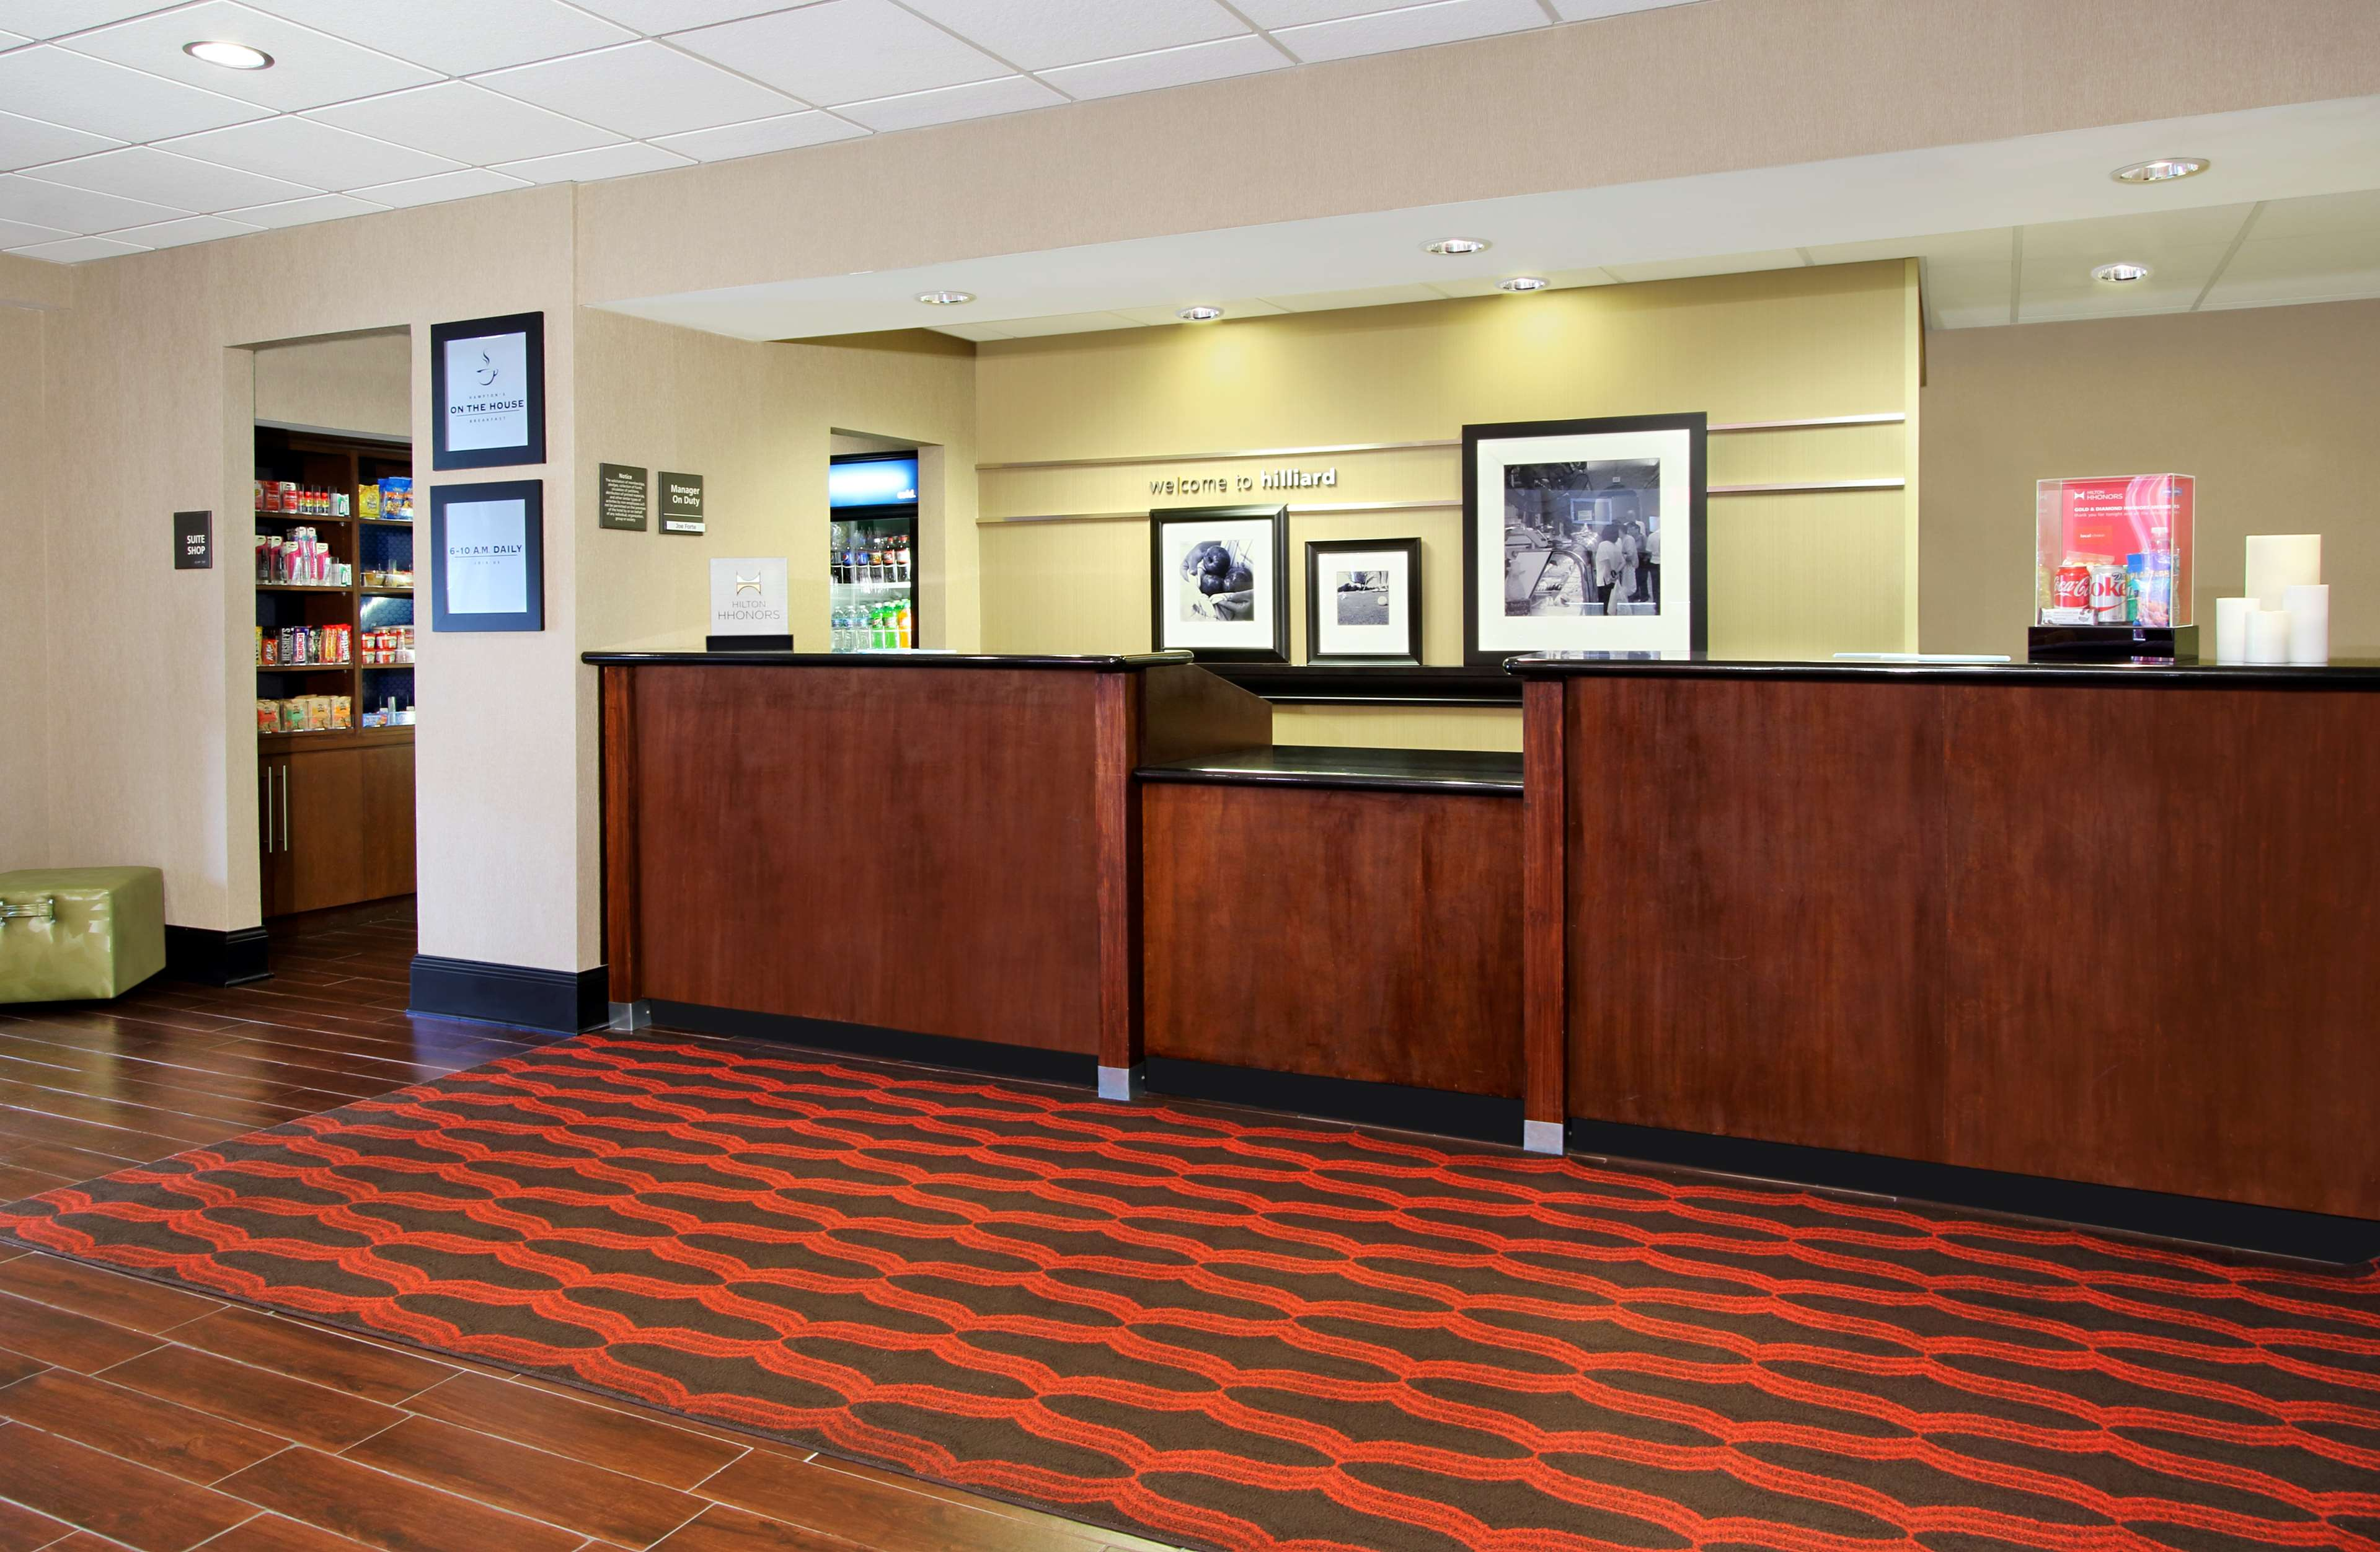 Hampton Inn & Suites Columbus Hilliard image 1